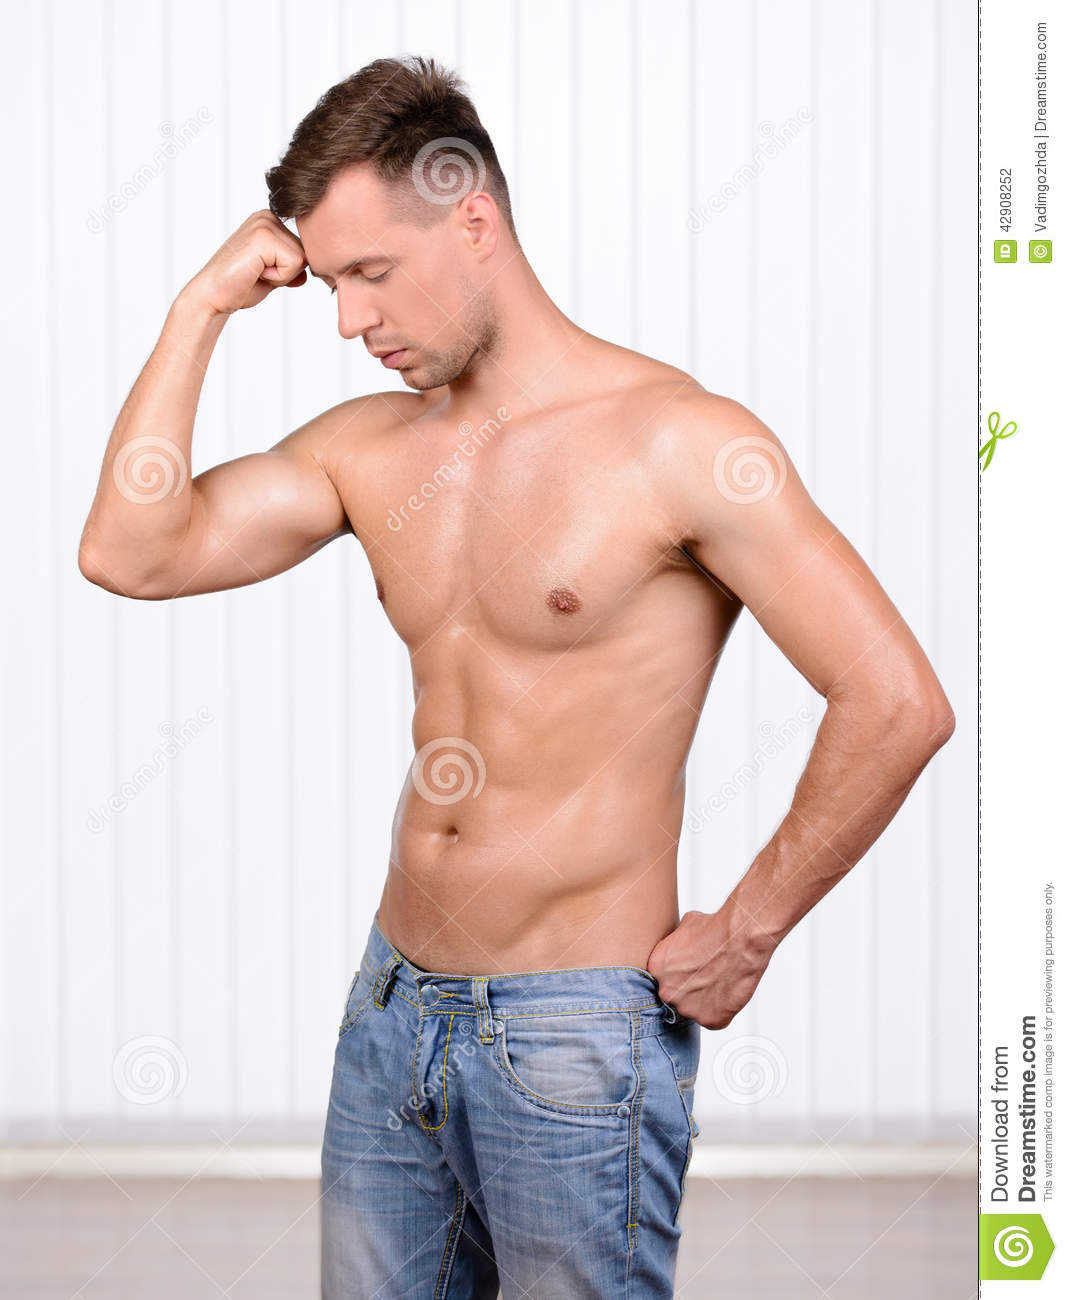 50b7713c5 Keeping his body in good shape. Cheerful young muscular man demonstration  of his body